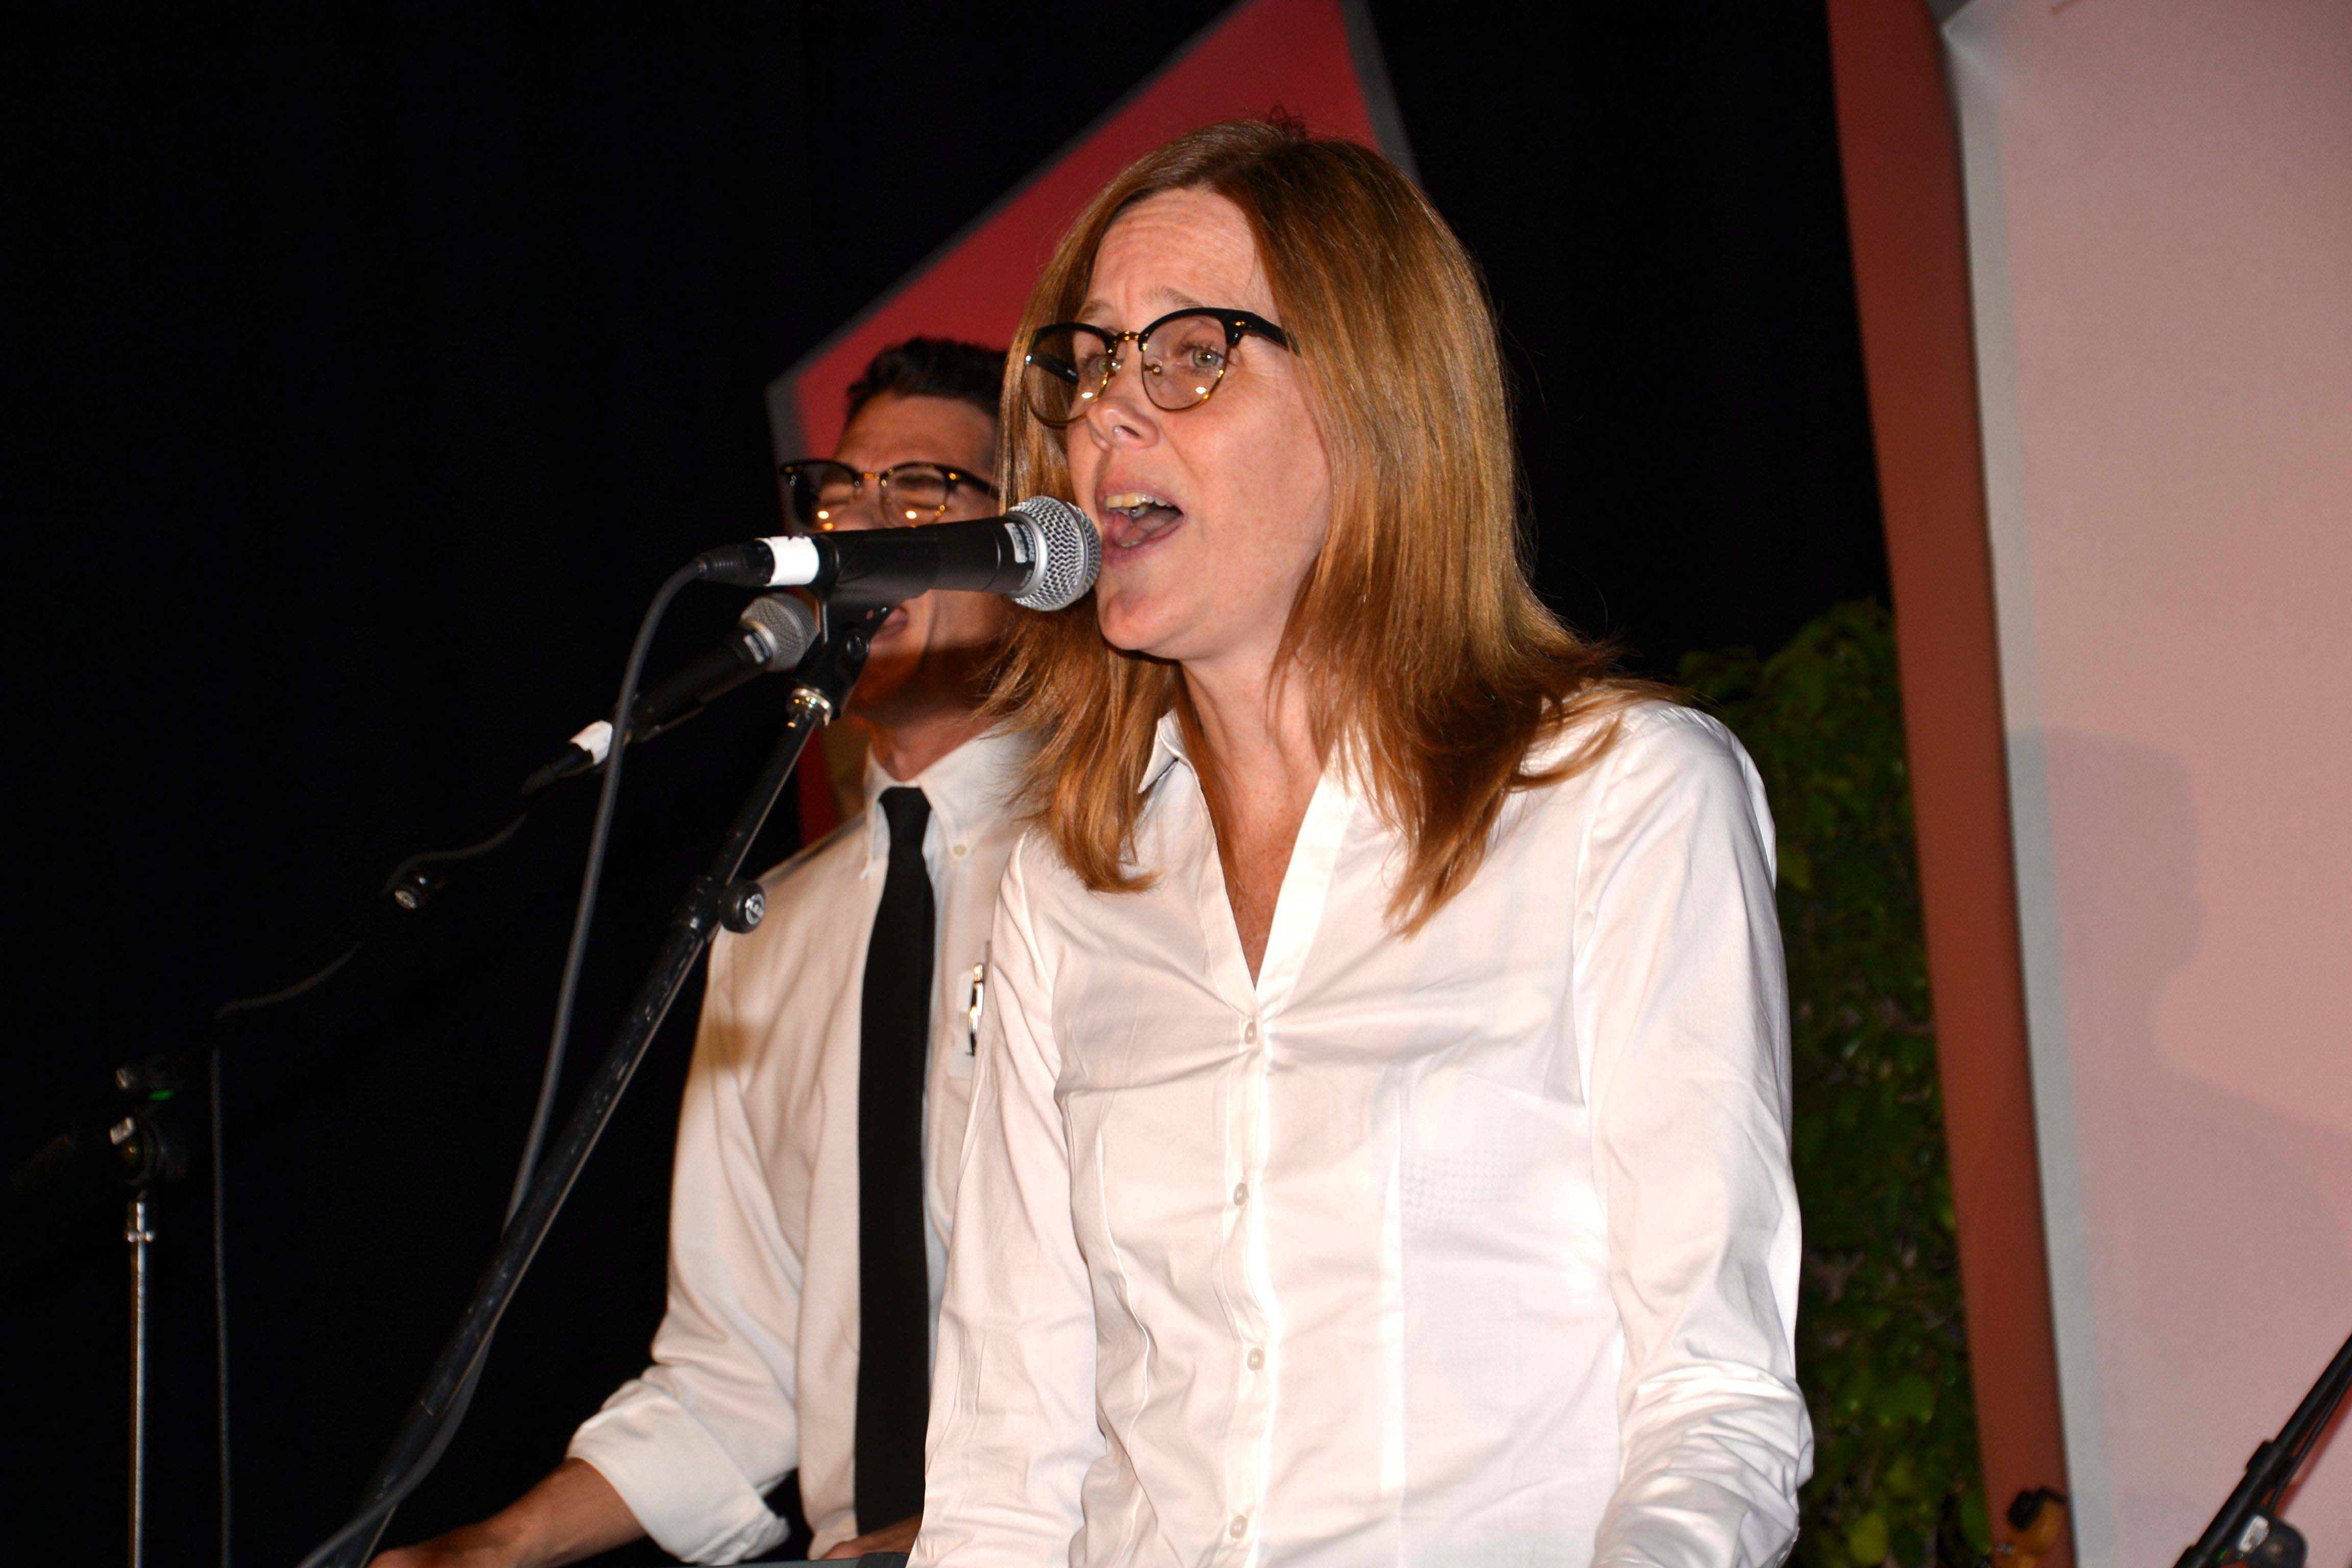 Brad Carlin and Jennifer Hill of The Imposteriors perform in the ASA's Got Talent competition